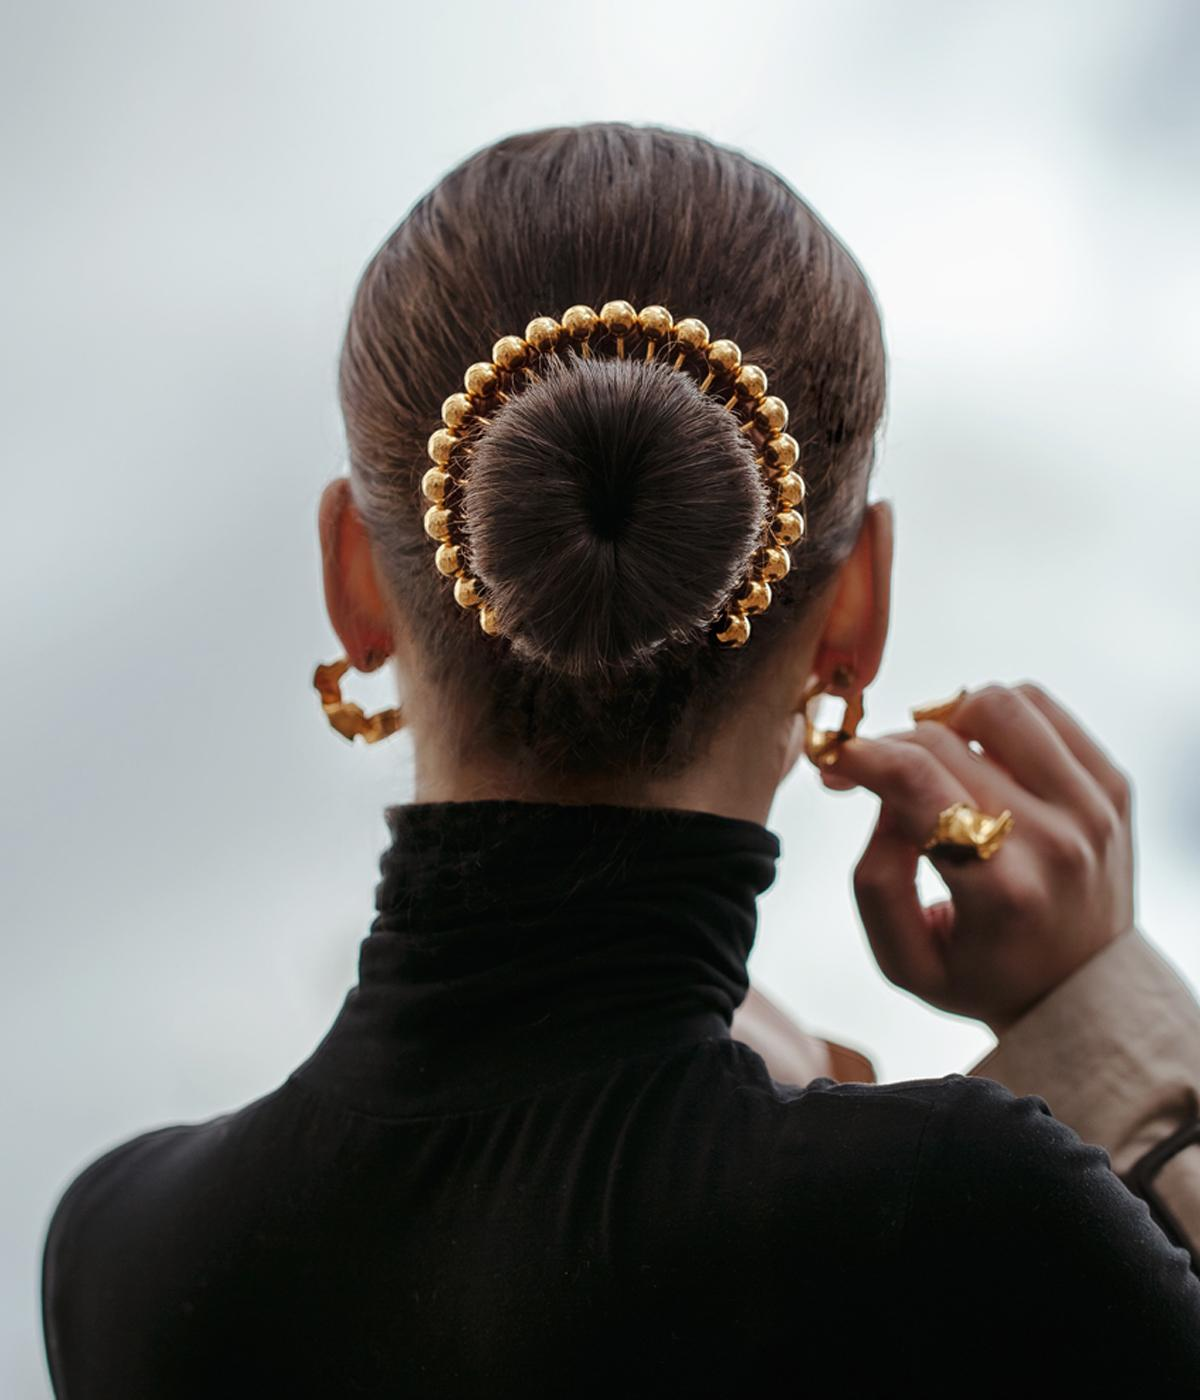 Back of woman's head, hair held back with a gold jewel